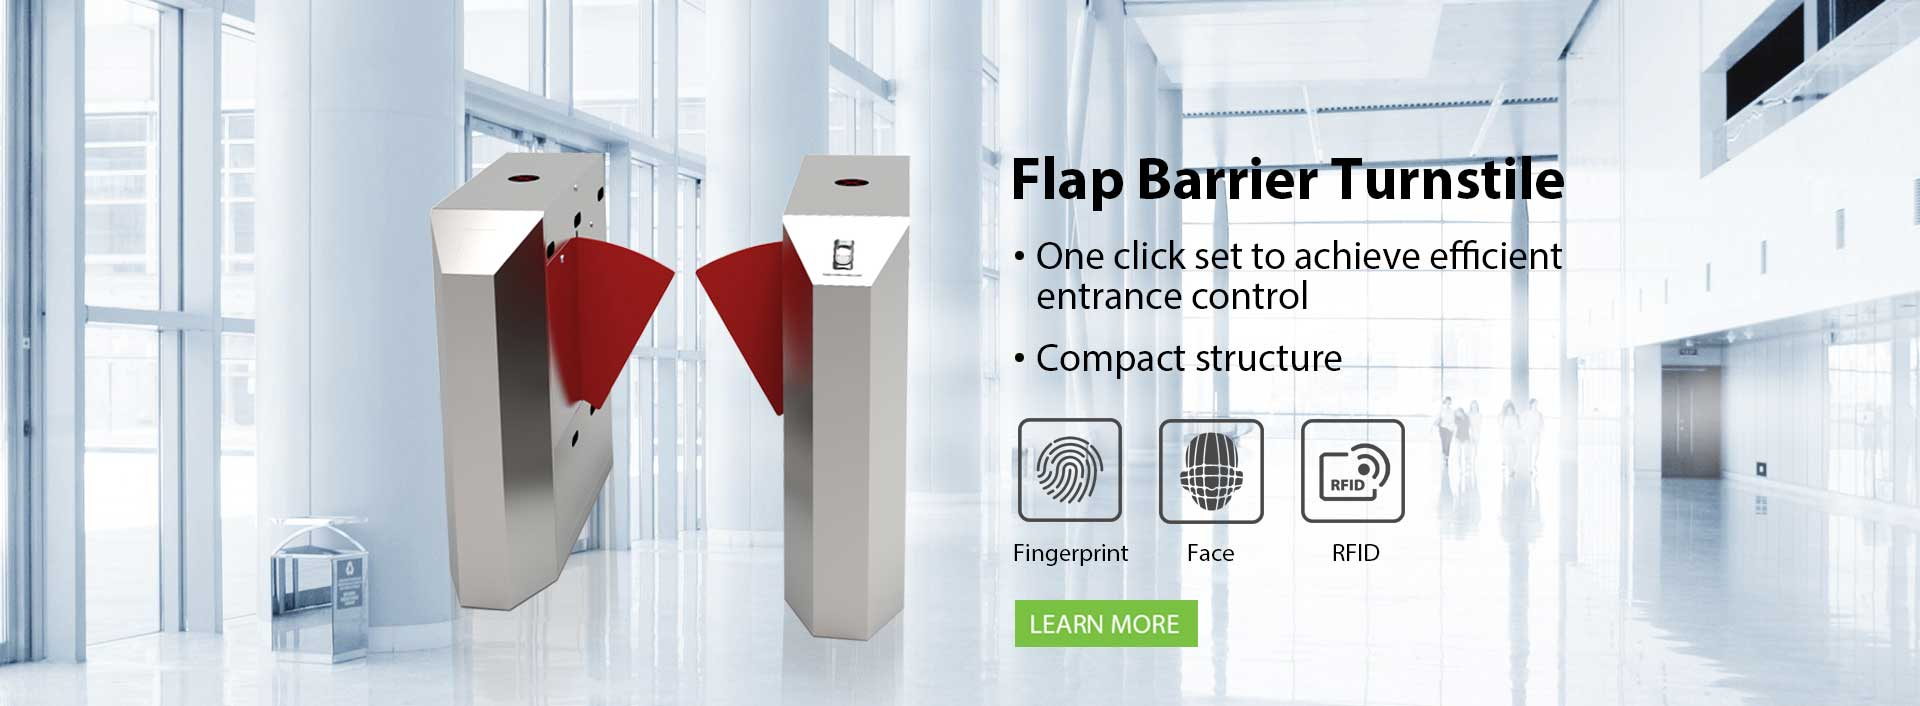 Flap-barrier-Banner_Website